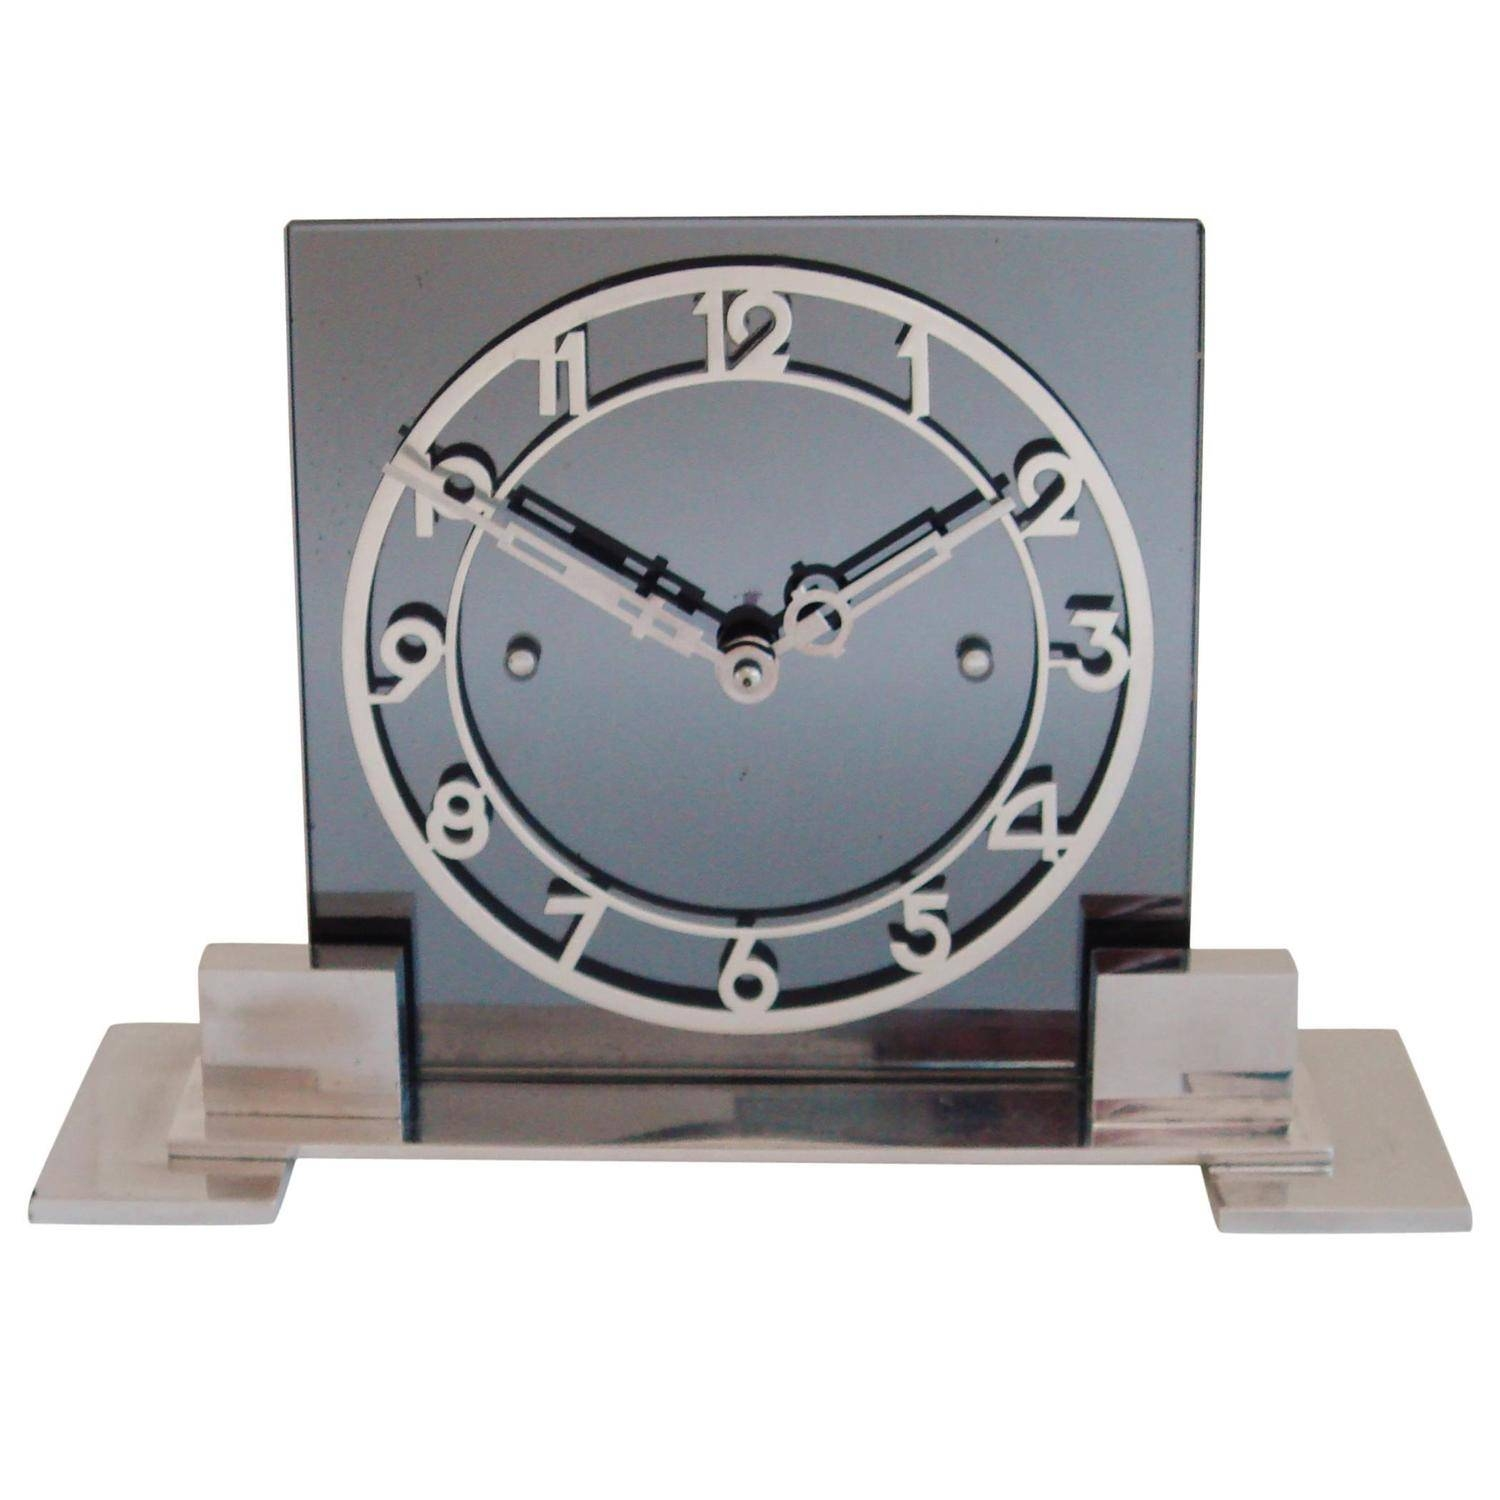 Large French Art Deco Mantle Clock In Chrome, Aluminium And Gray Inside 2017 Large Art Deco Wall Clocks (View 30 of 30)